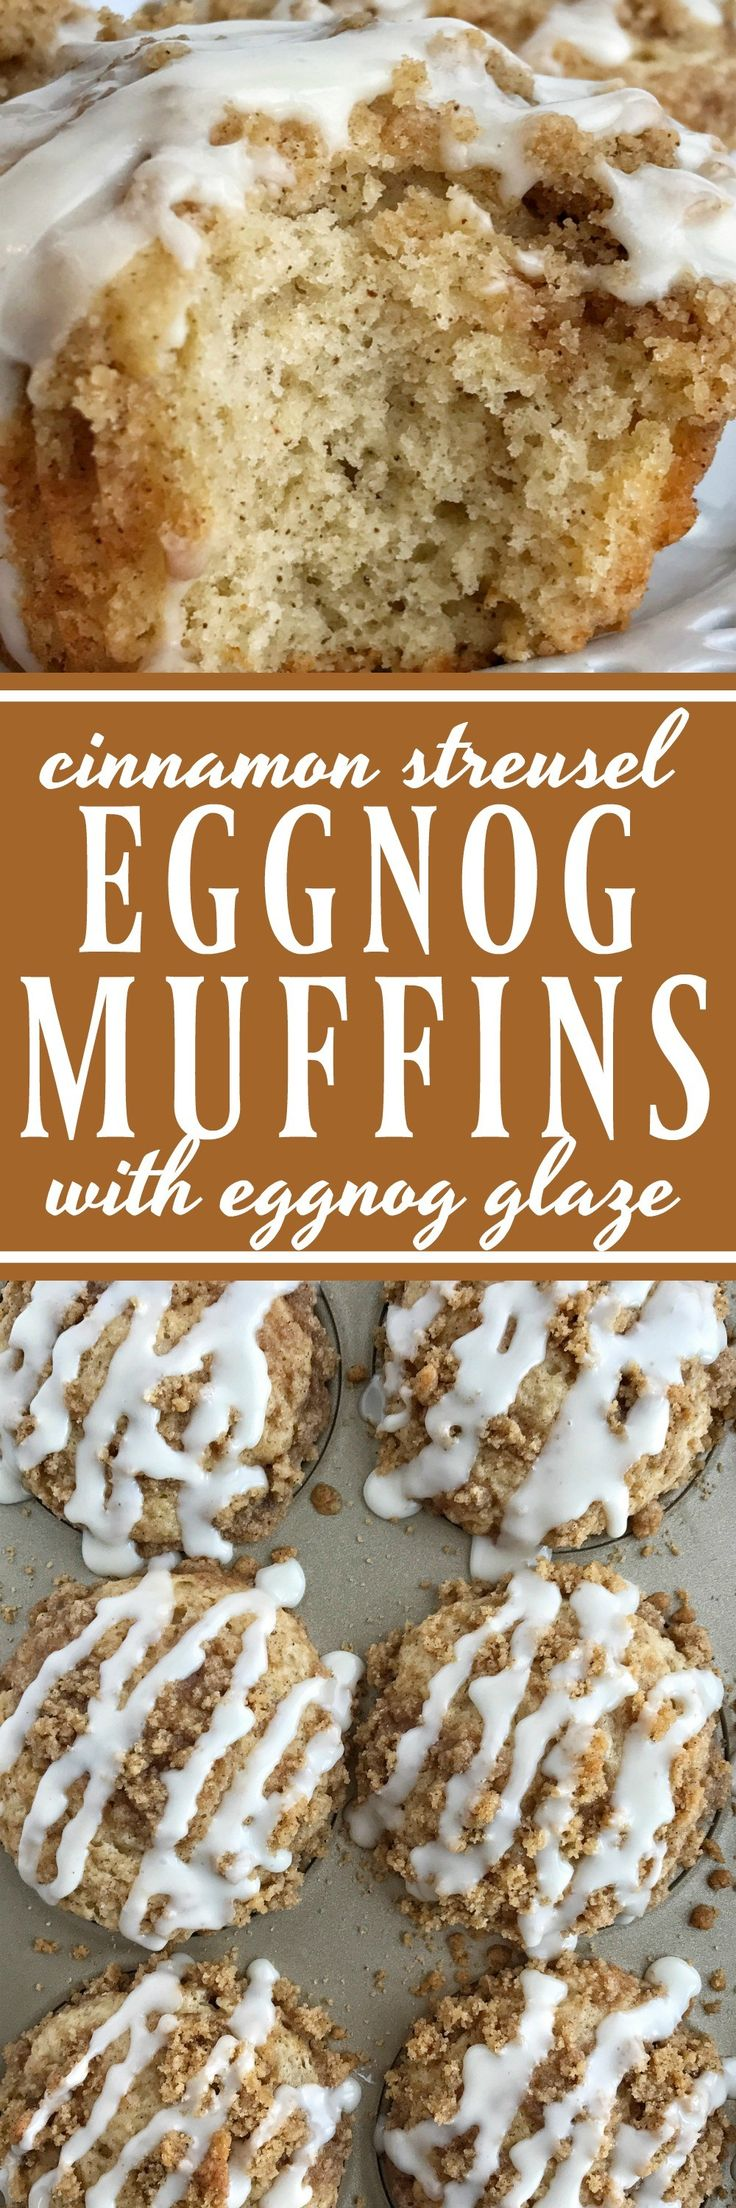 Eggnog Crumb Muffins | Soft, tender eggnog muffins with a sweet & buttery cinnamon streusel on top and a simple eggnog glaze. Make good use of seasonal eggnog and make these eggnog crumb muffins. Sure to be a hit and so delicious!